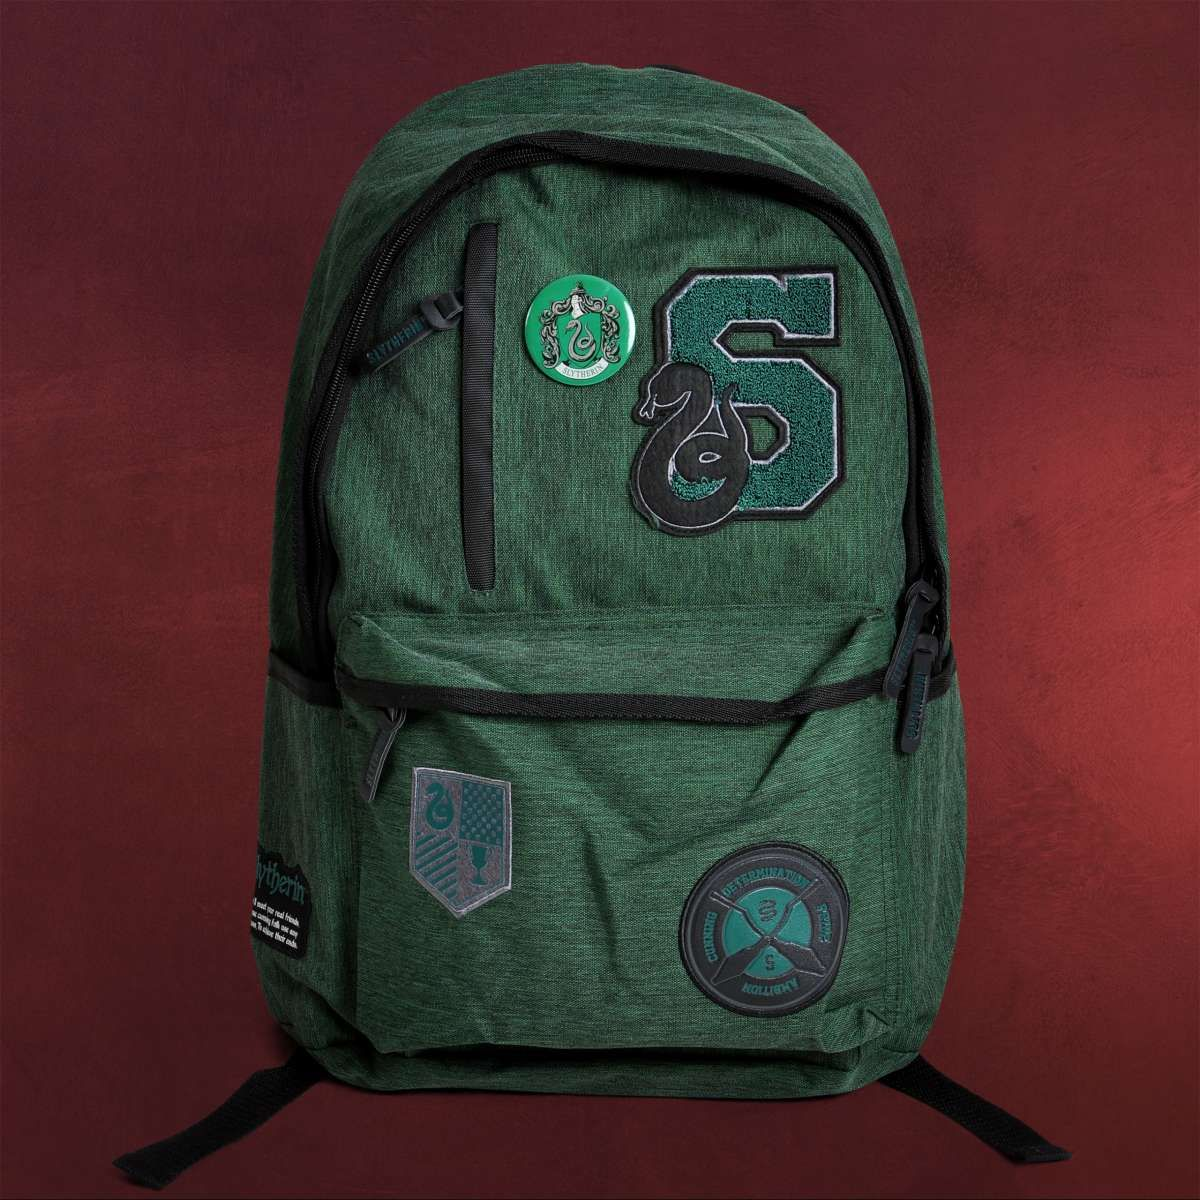 Harry Potter Slytherin Wappen Rucksack Harry Potter Clothes Slytherin Harry Potter Shoes Harry Potter Outfits